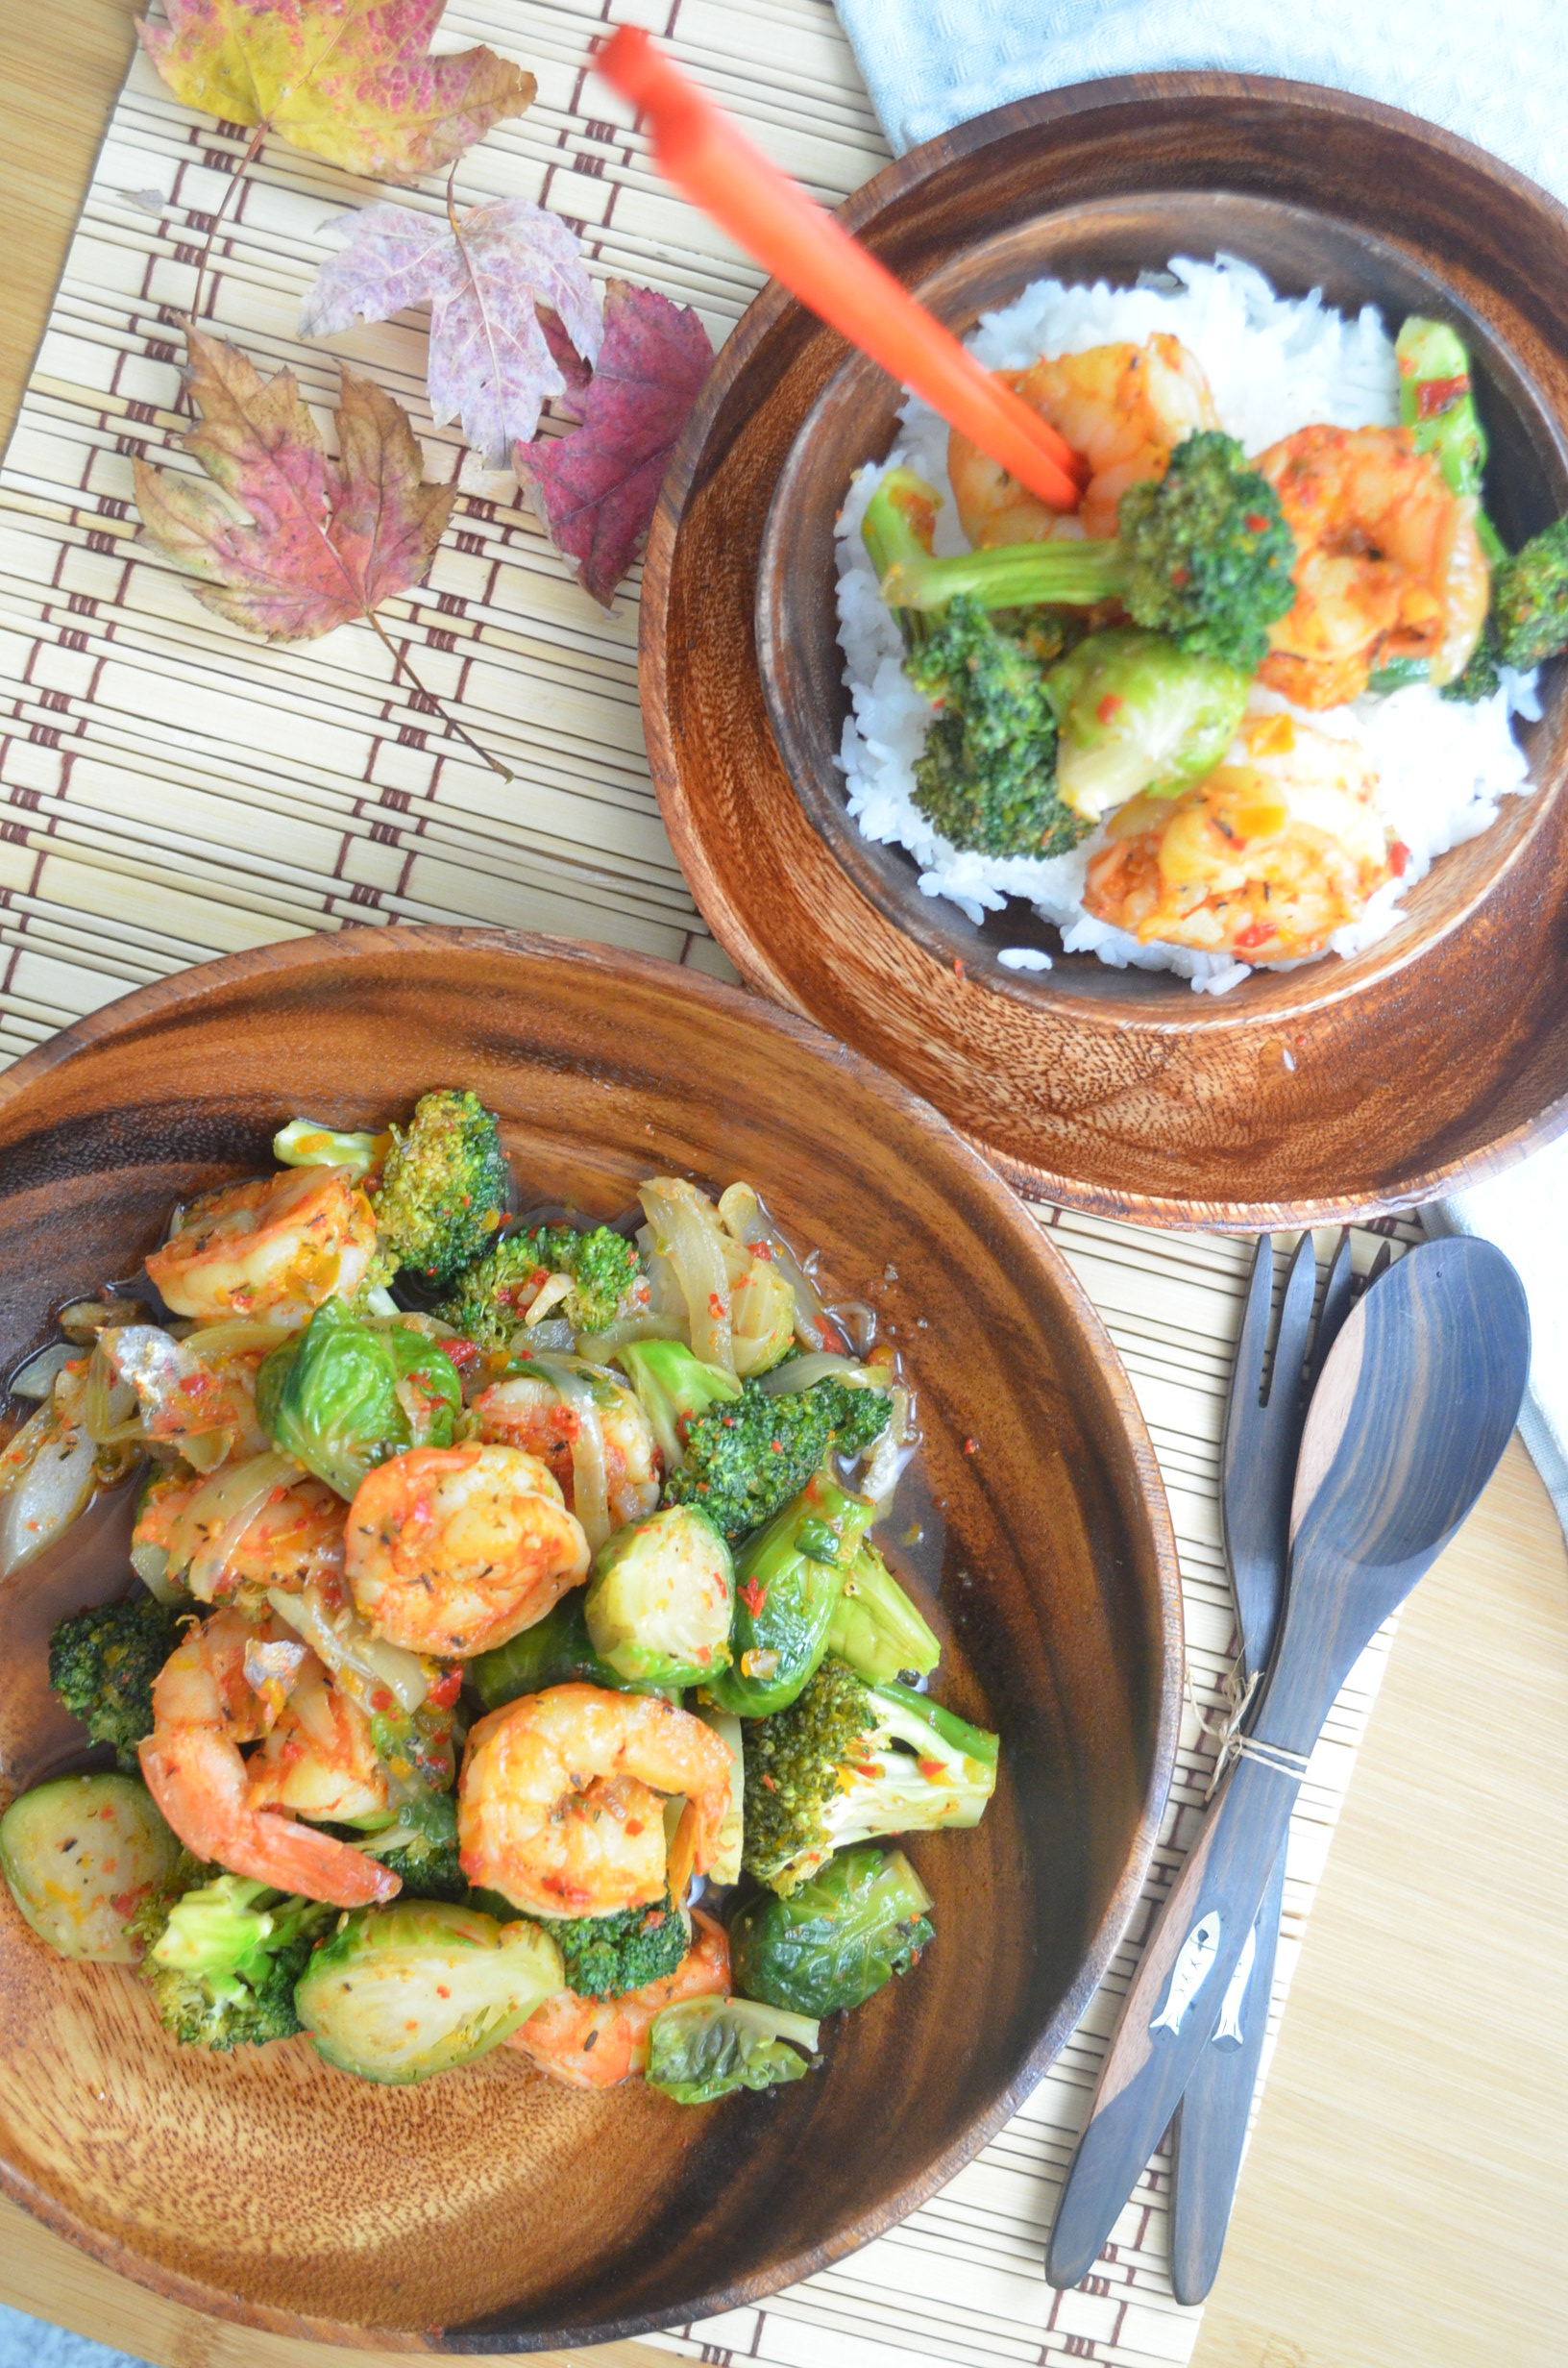 Shrimp and Brussels Sprout Stir-Fry